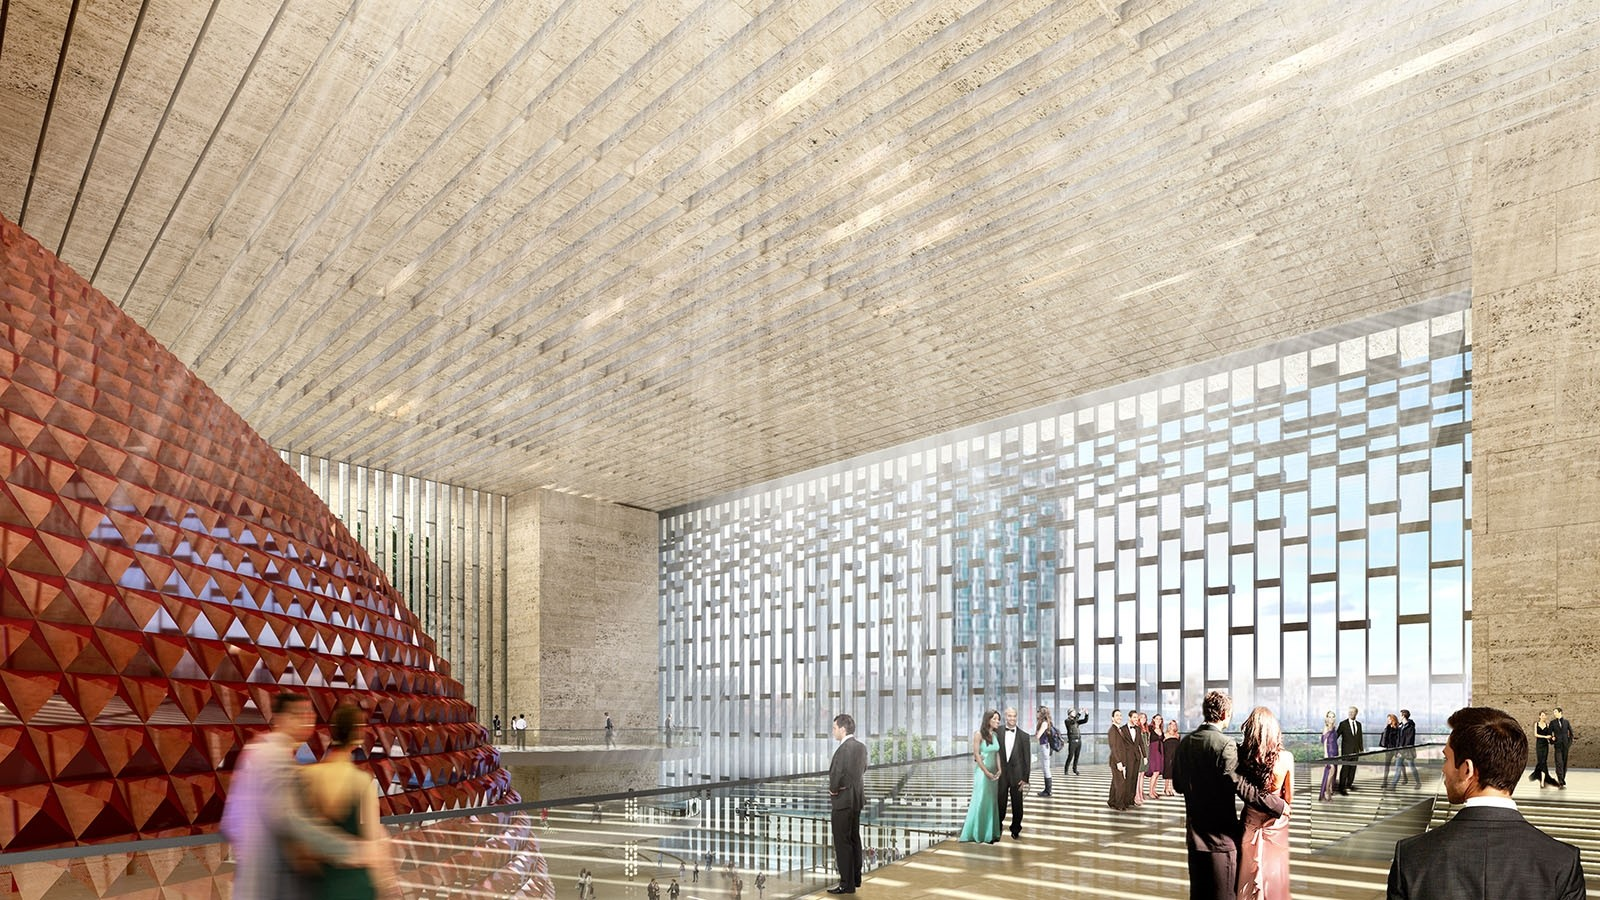 New Atatürk Cultural Center to be completed by 2019